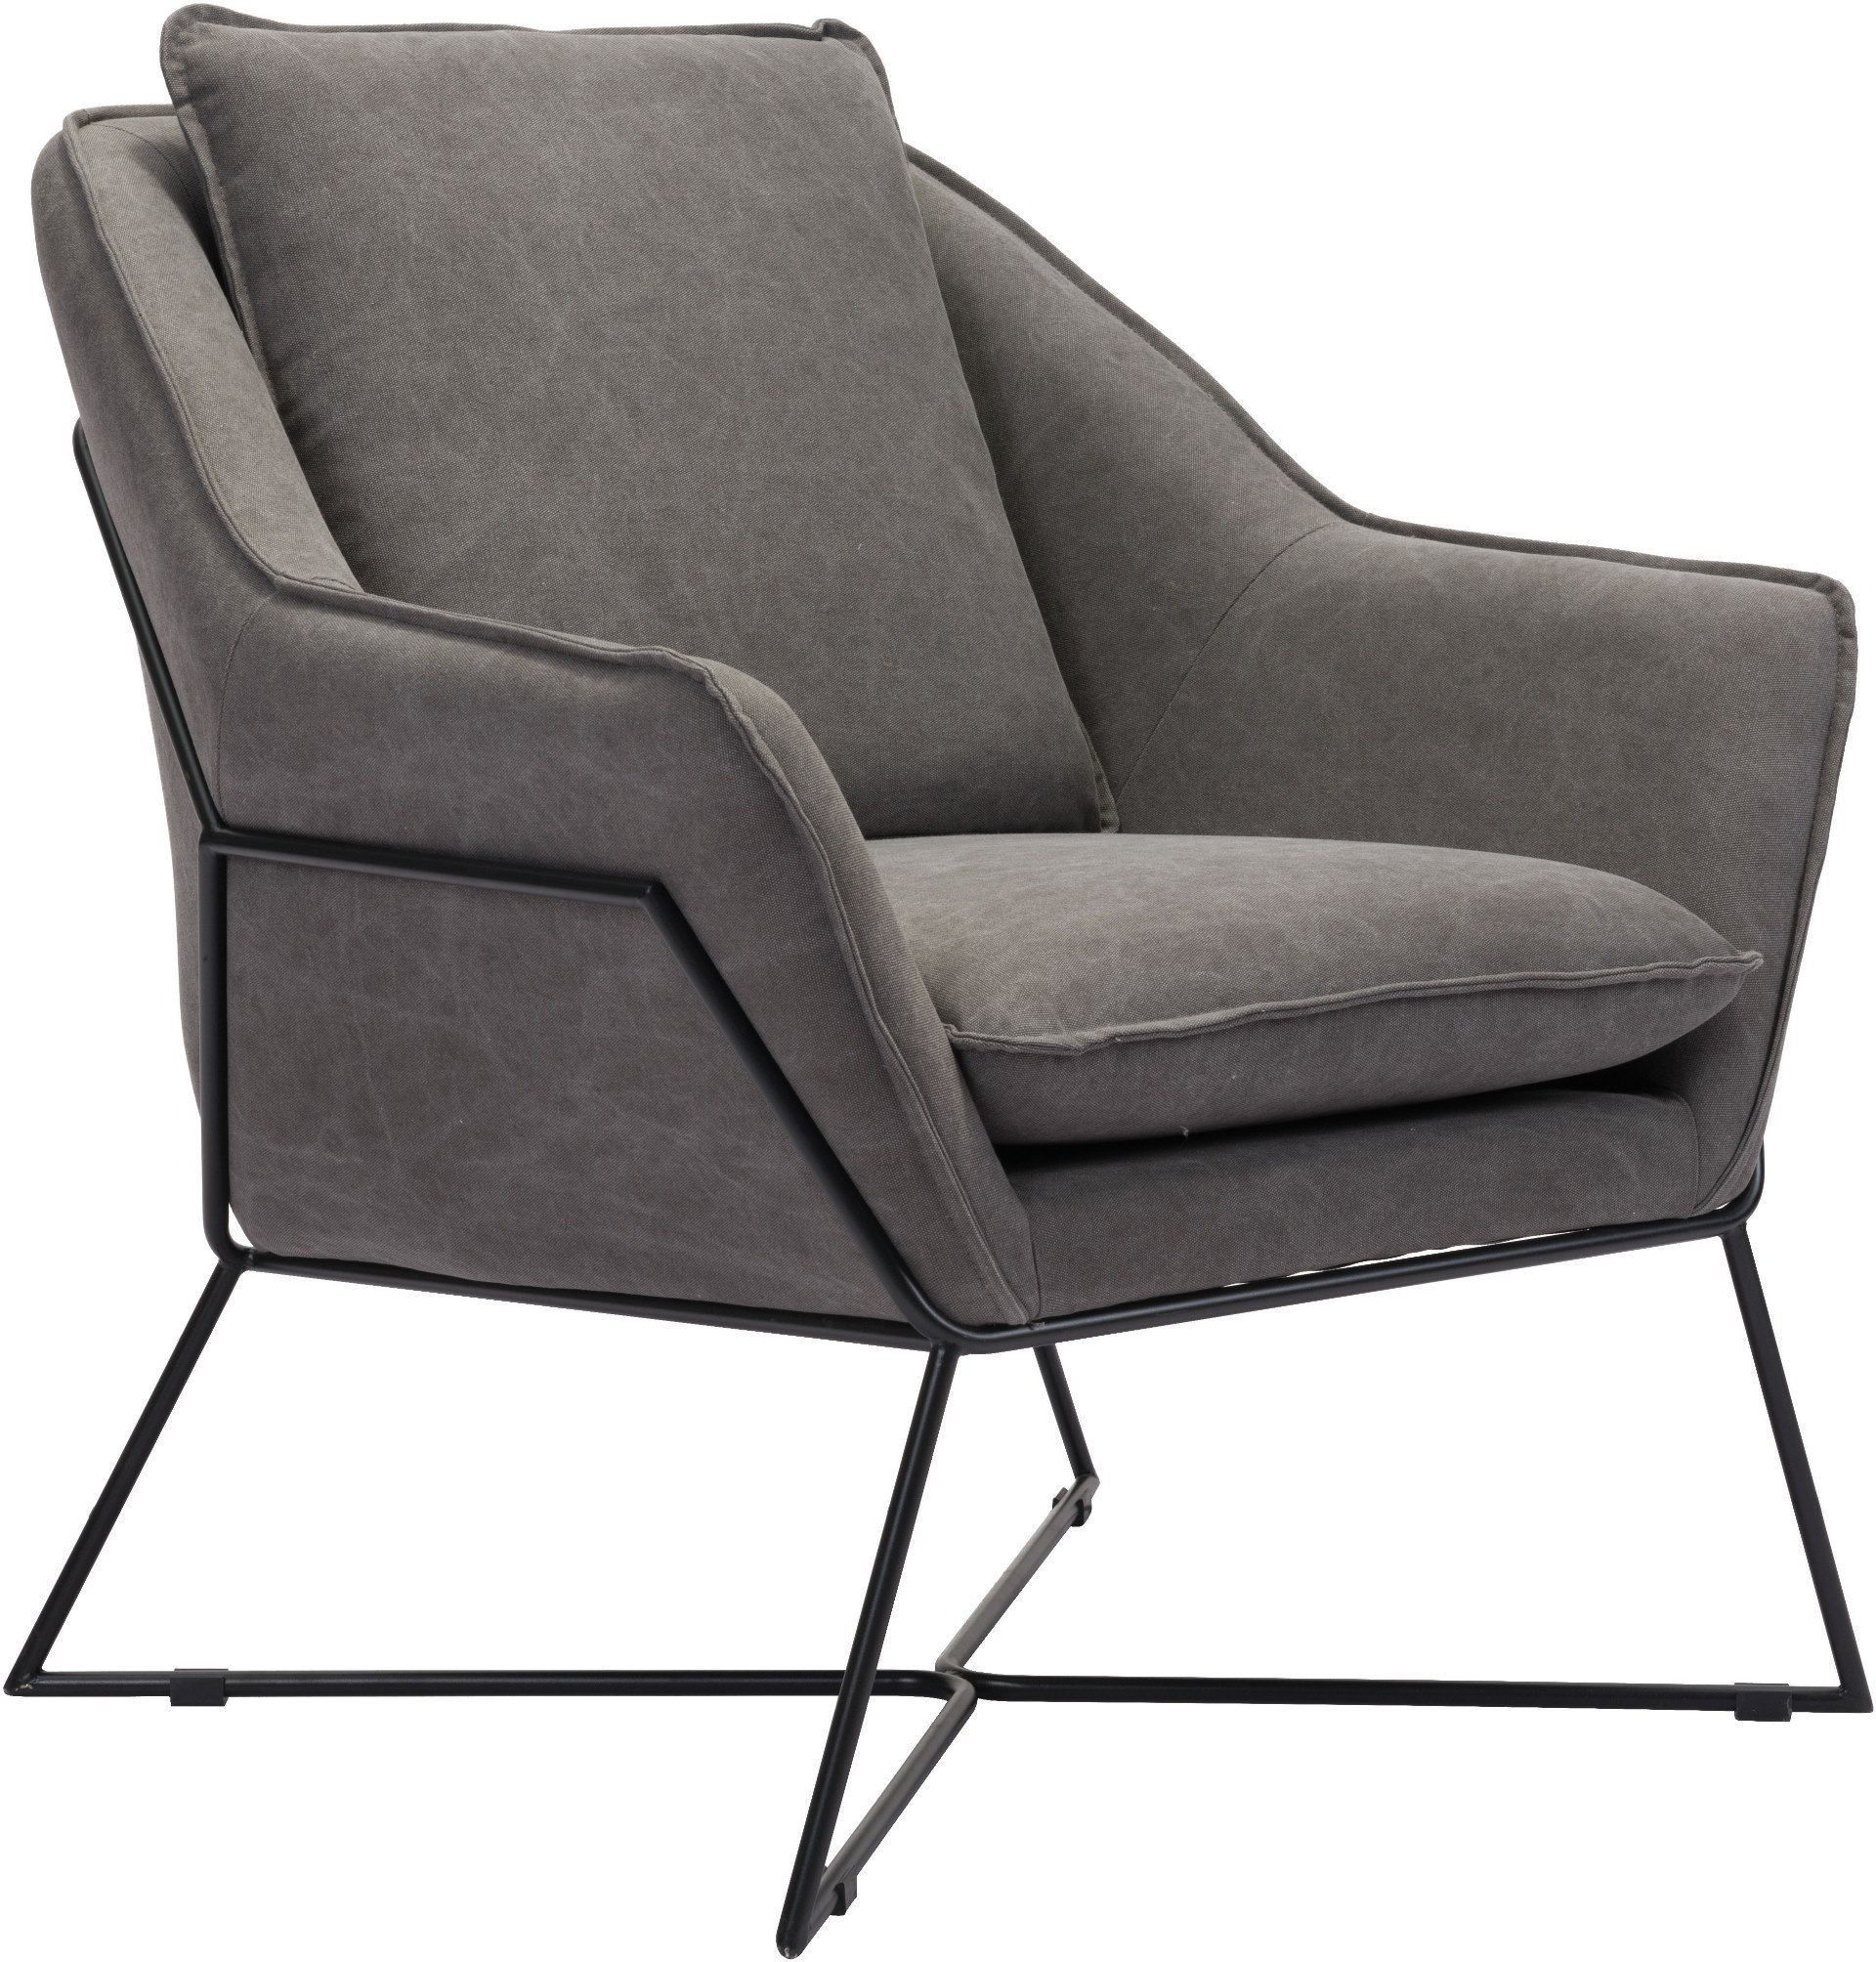 Grey Lounge Chair Lincoln Gray Lounge Chair From Zuo Coleman Furniture